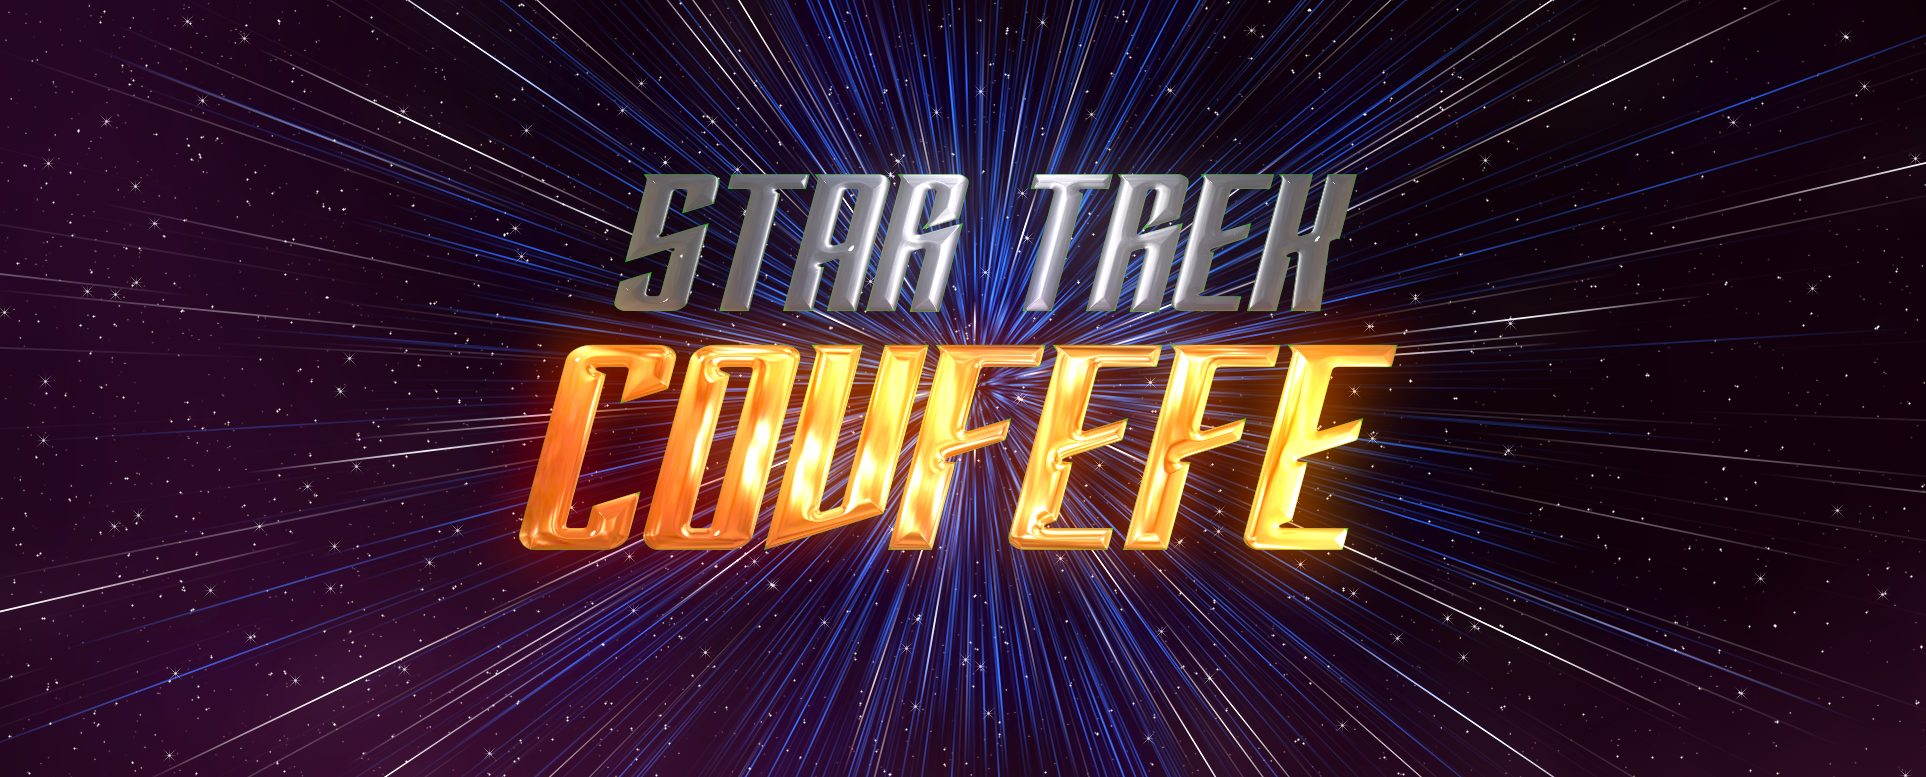 Star Trek: Covfefe